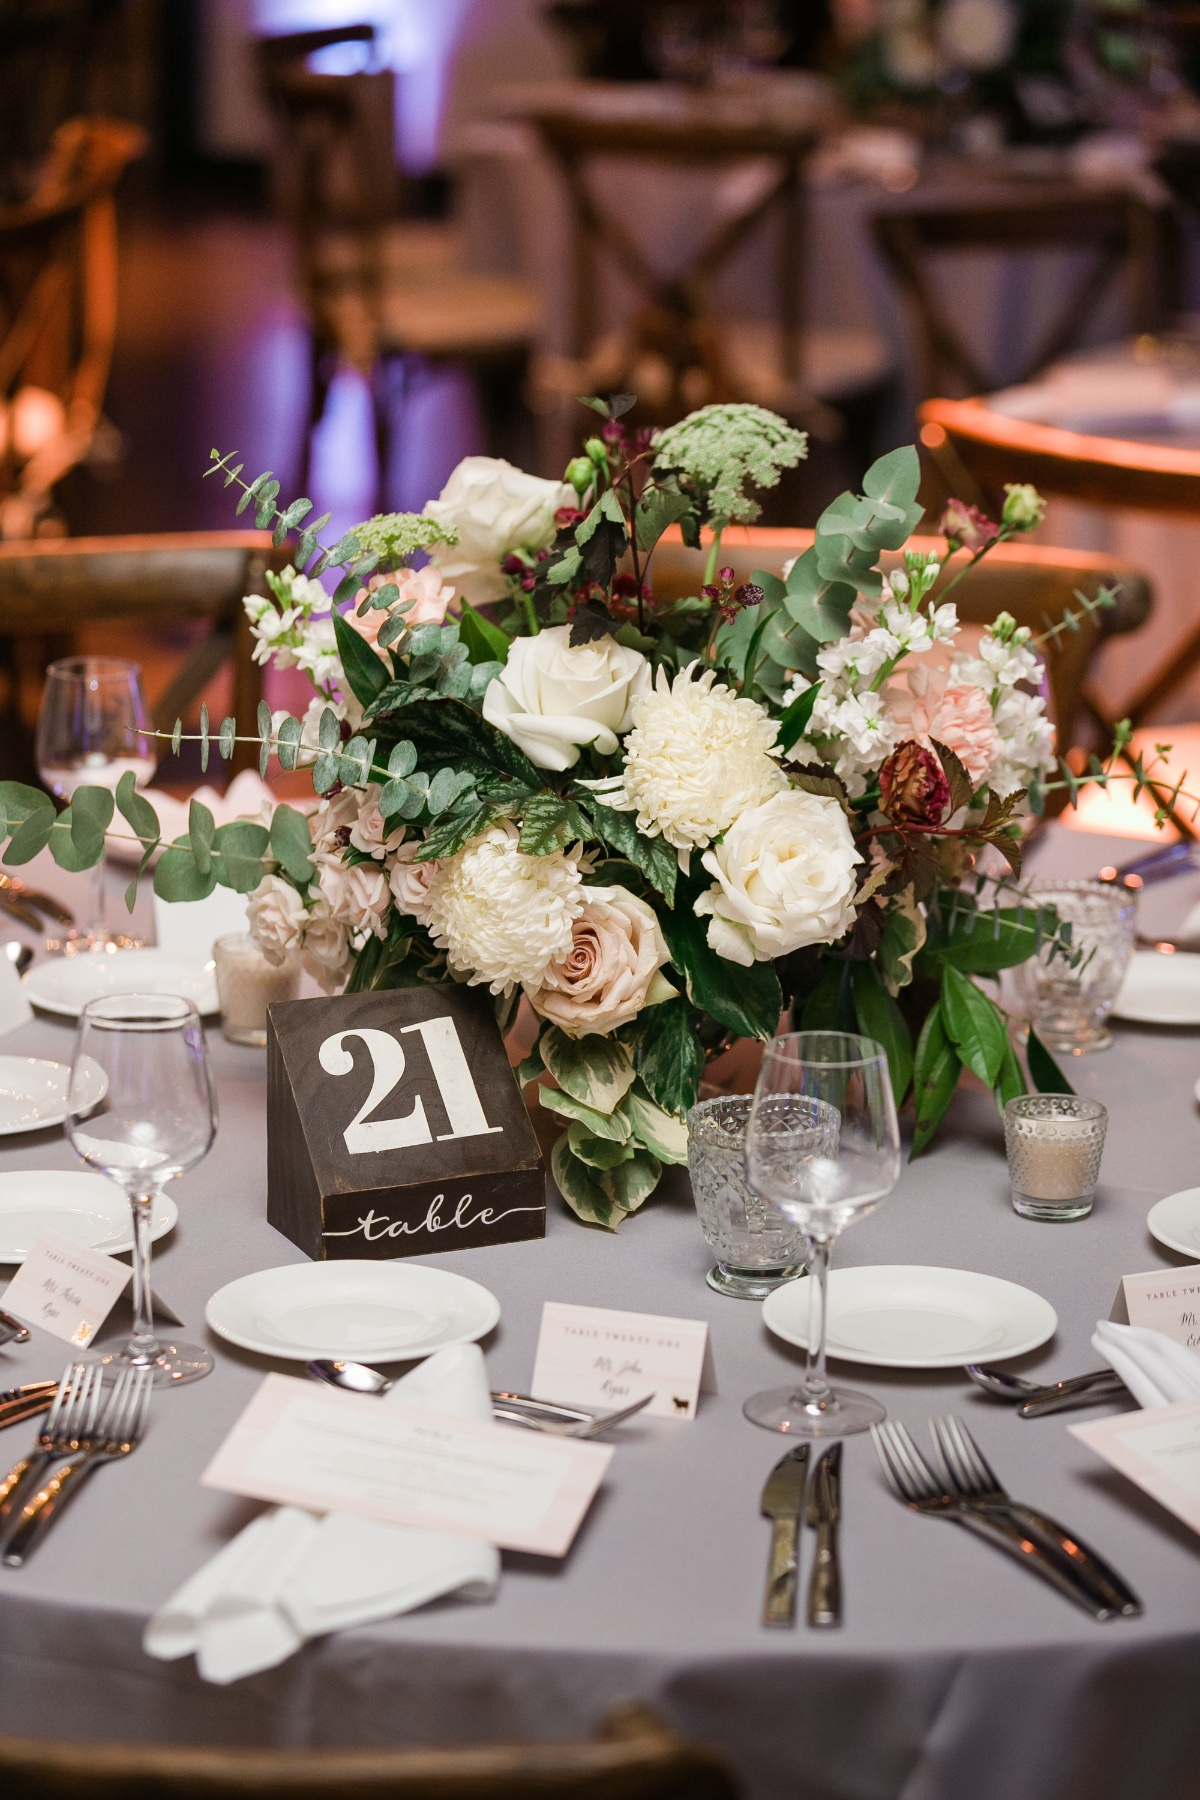 wood block table number and floral centerpiece